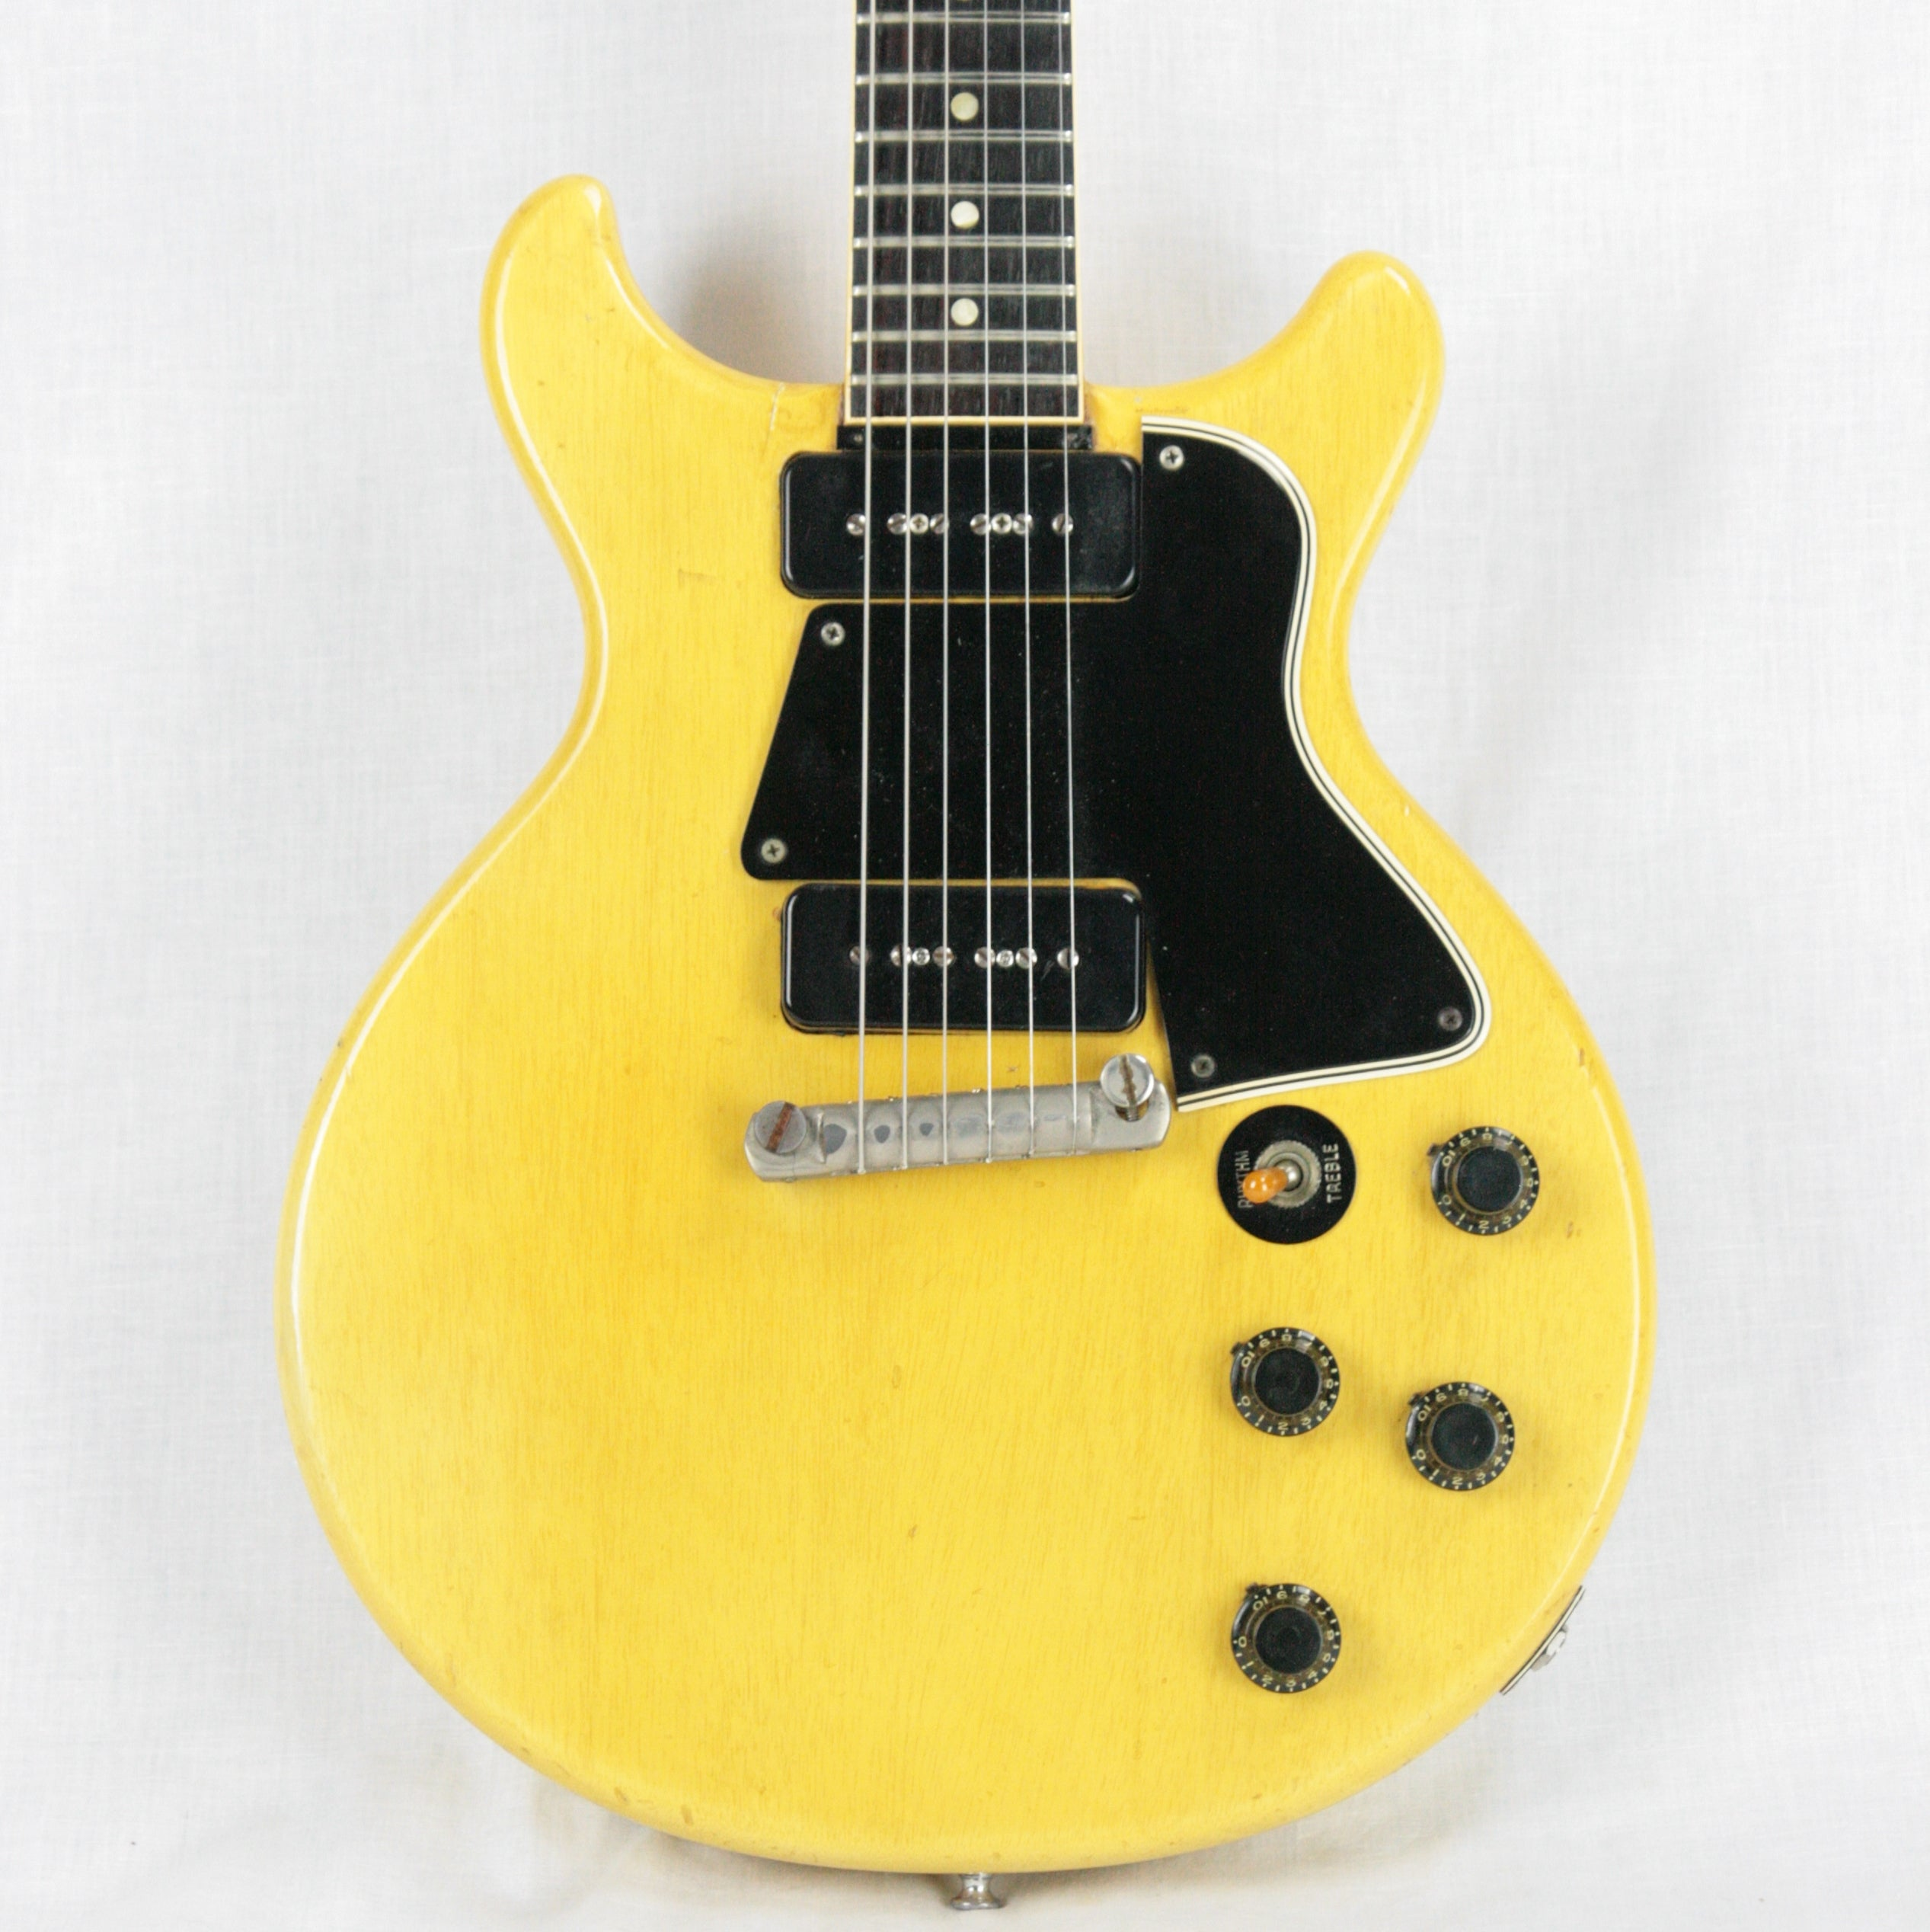 1959 Gibson Les Paul TV Yellow Special! Doublecut, Double Cutaway 1950's LP! P90's Jr.